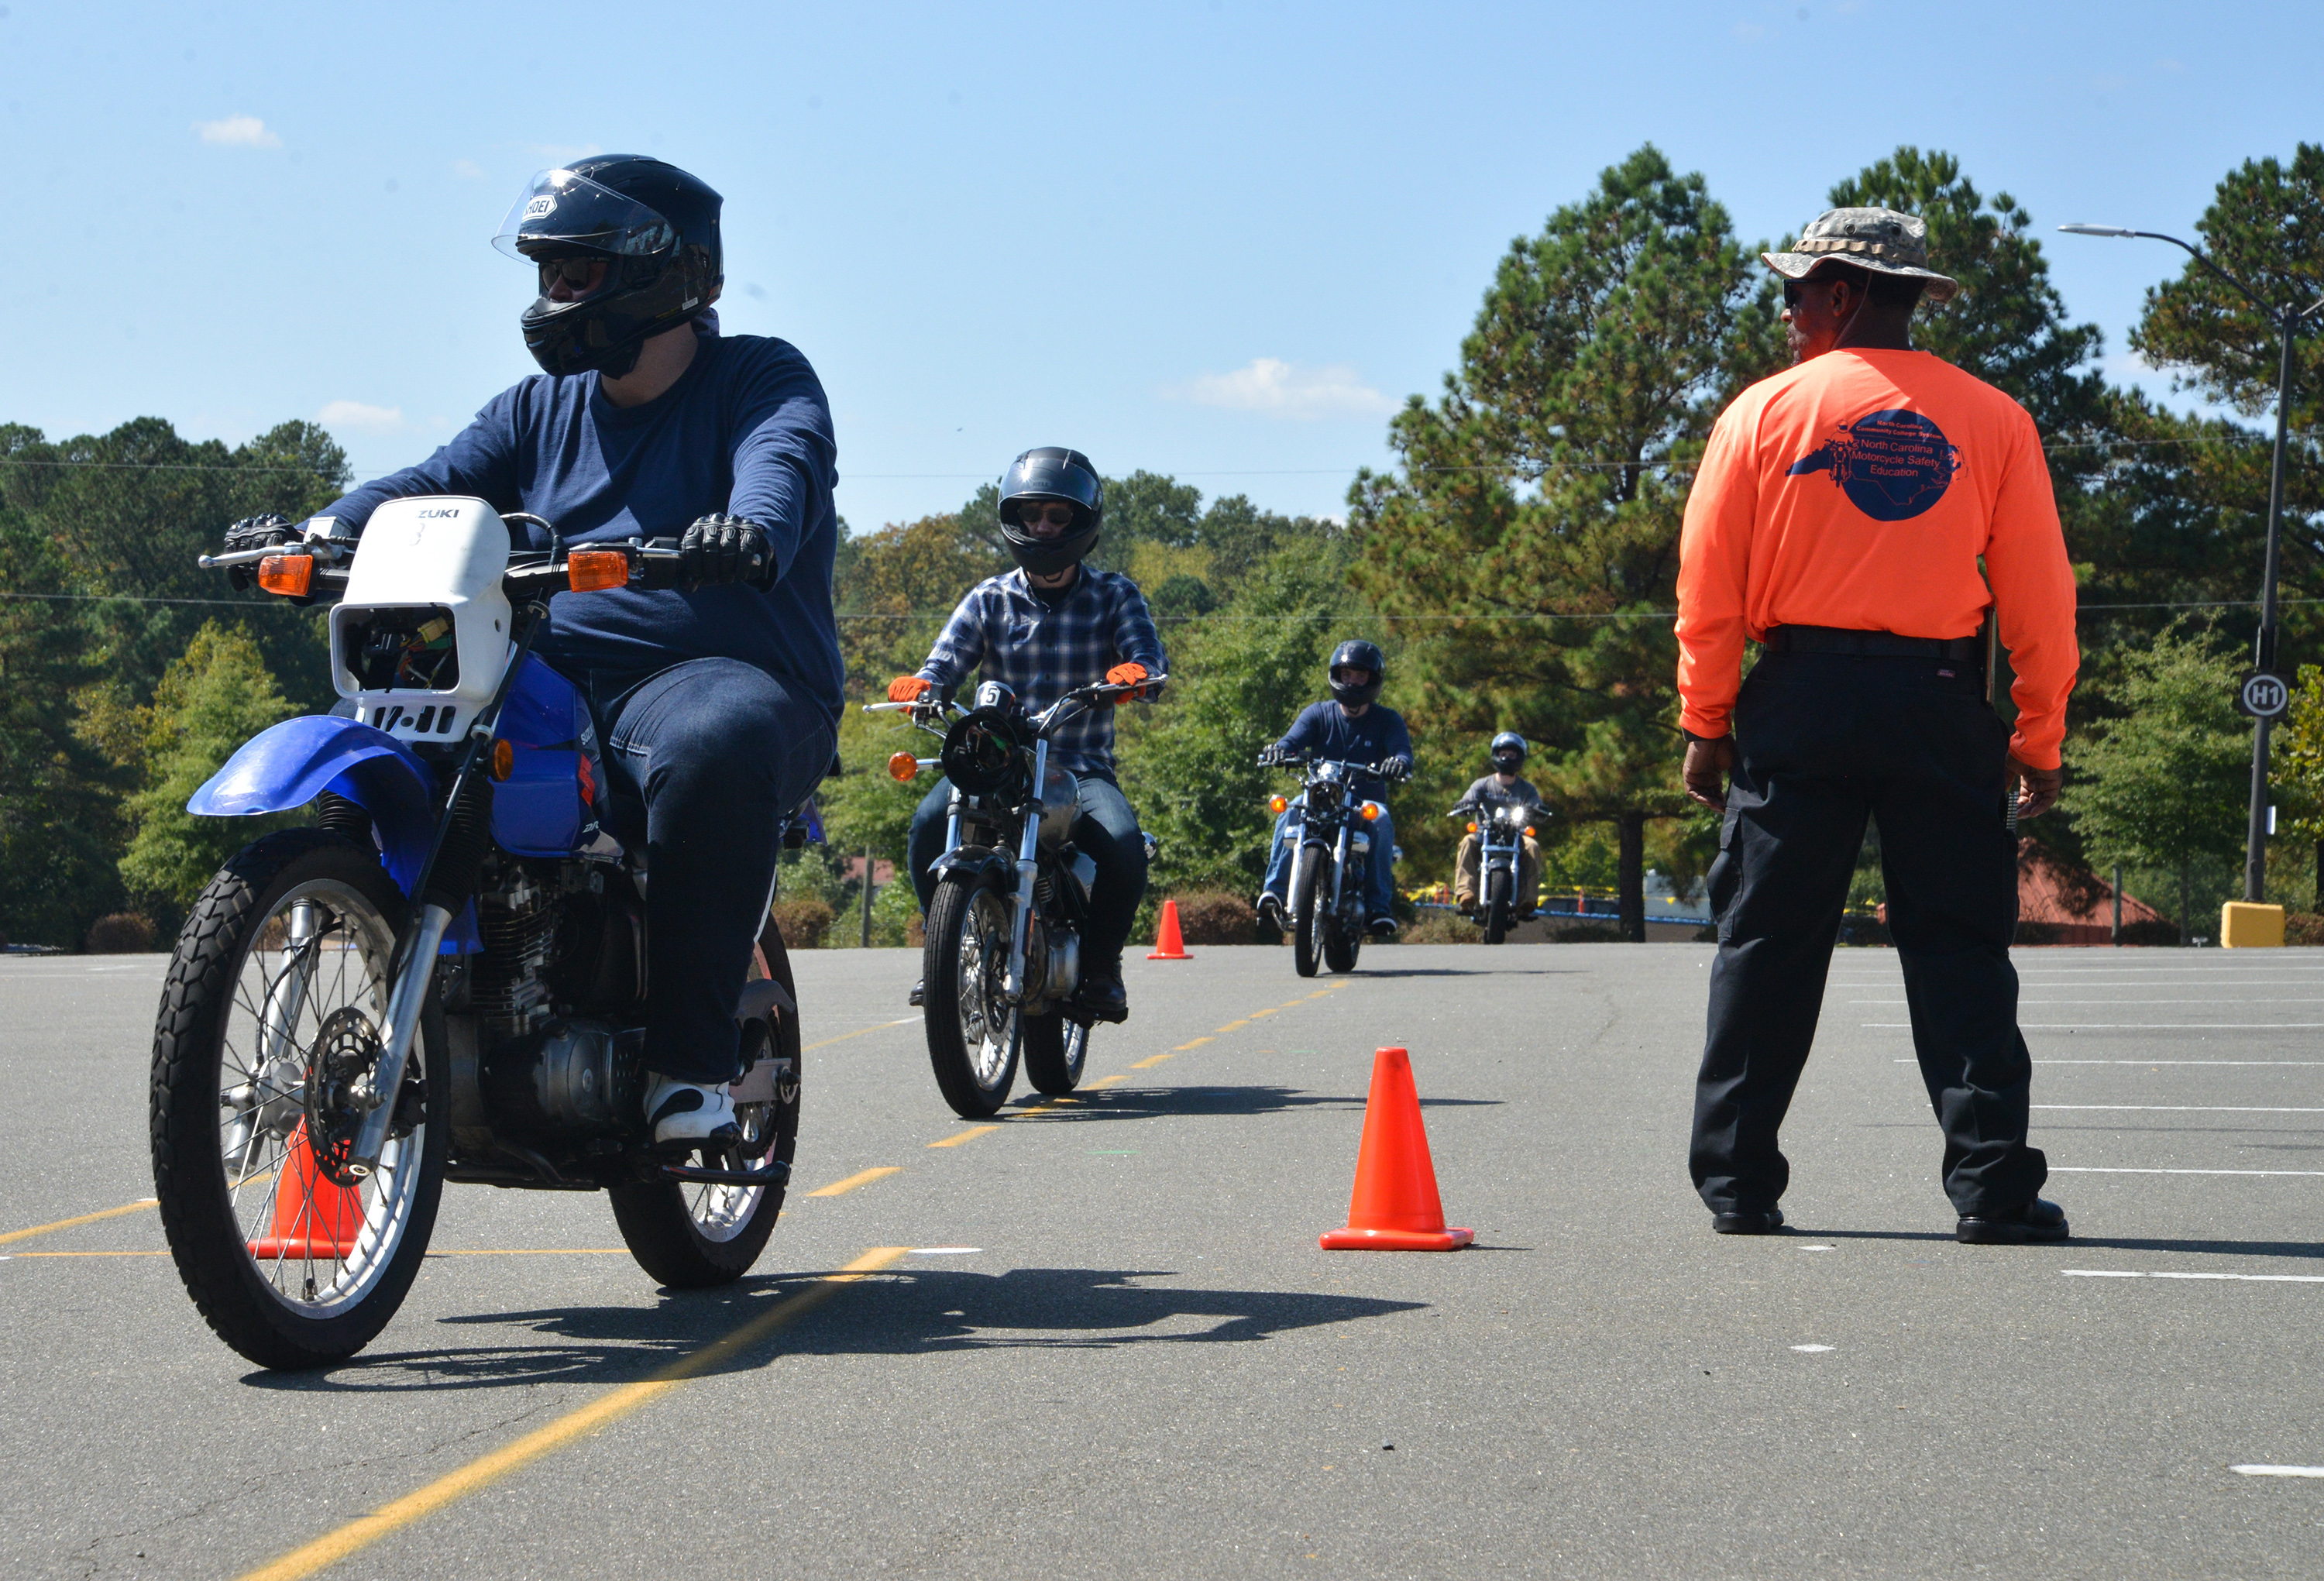 motorcyclists drive around orange cones while instructor supervises